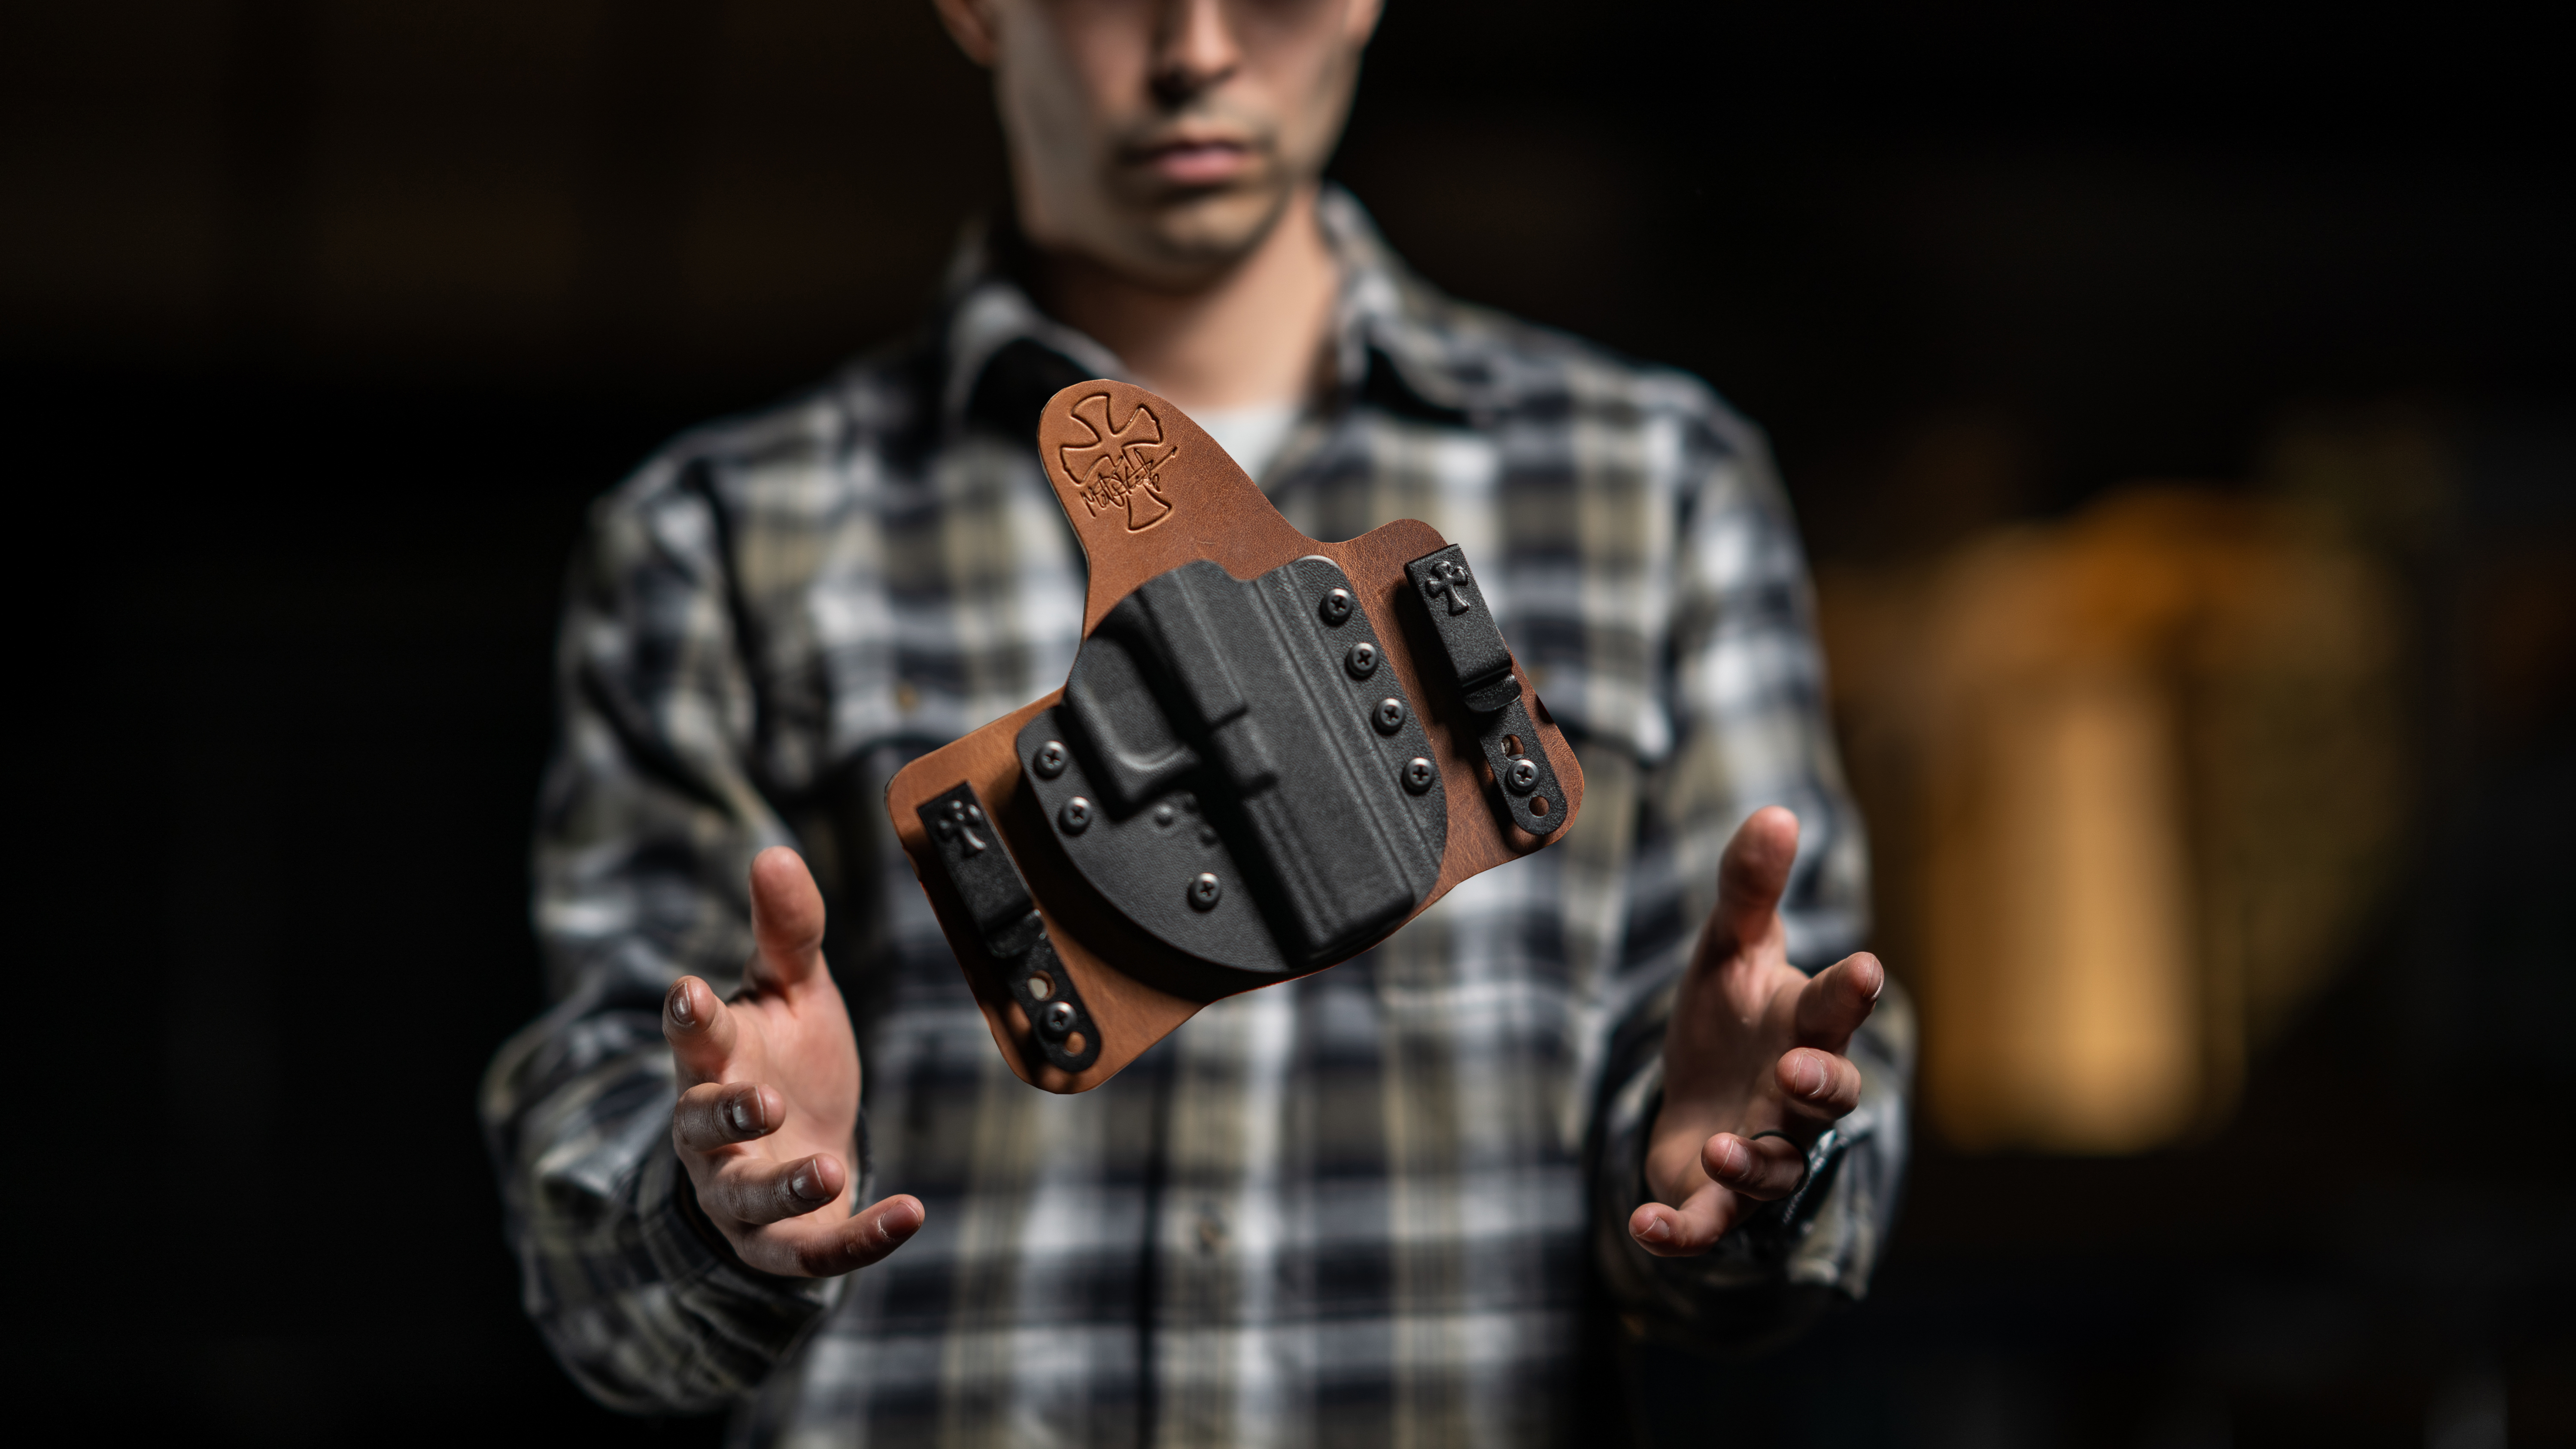 adjustable hybrid holster, best hybrid holster, best holster, adjustable retention, Valentine's Day, gift guide, concealed carry, ST2, MT2, hybrid holster, most comfortable holster, Hellcat, Shield, P365, Mossberg, Gunsite Academy, 5-11 Tactical, mag loader, Hornady, ammunition, CrossBreed Holsters, gifts, Valentine's, Streamlight, MC2c, firearms training, gunsite, self-defense, weapon-mounted light, light, lasers, Action Target, date night, traincation, gift card, firearms training, responsibly armed